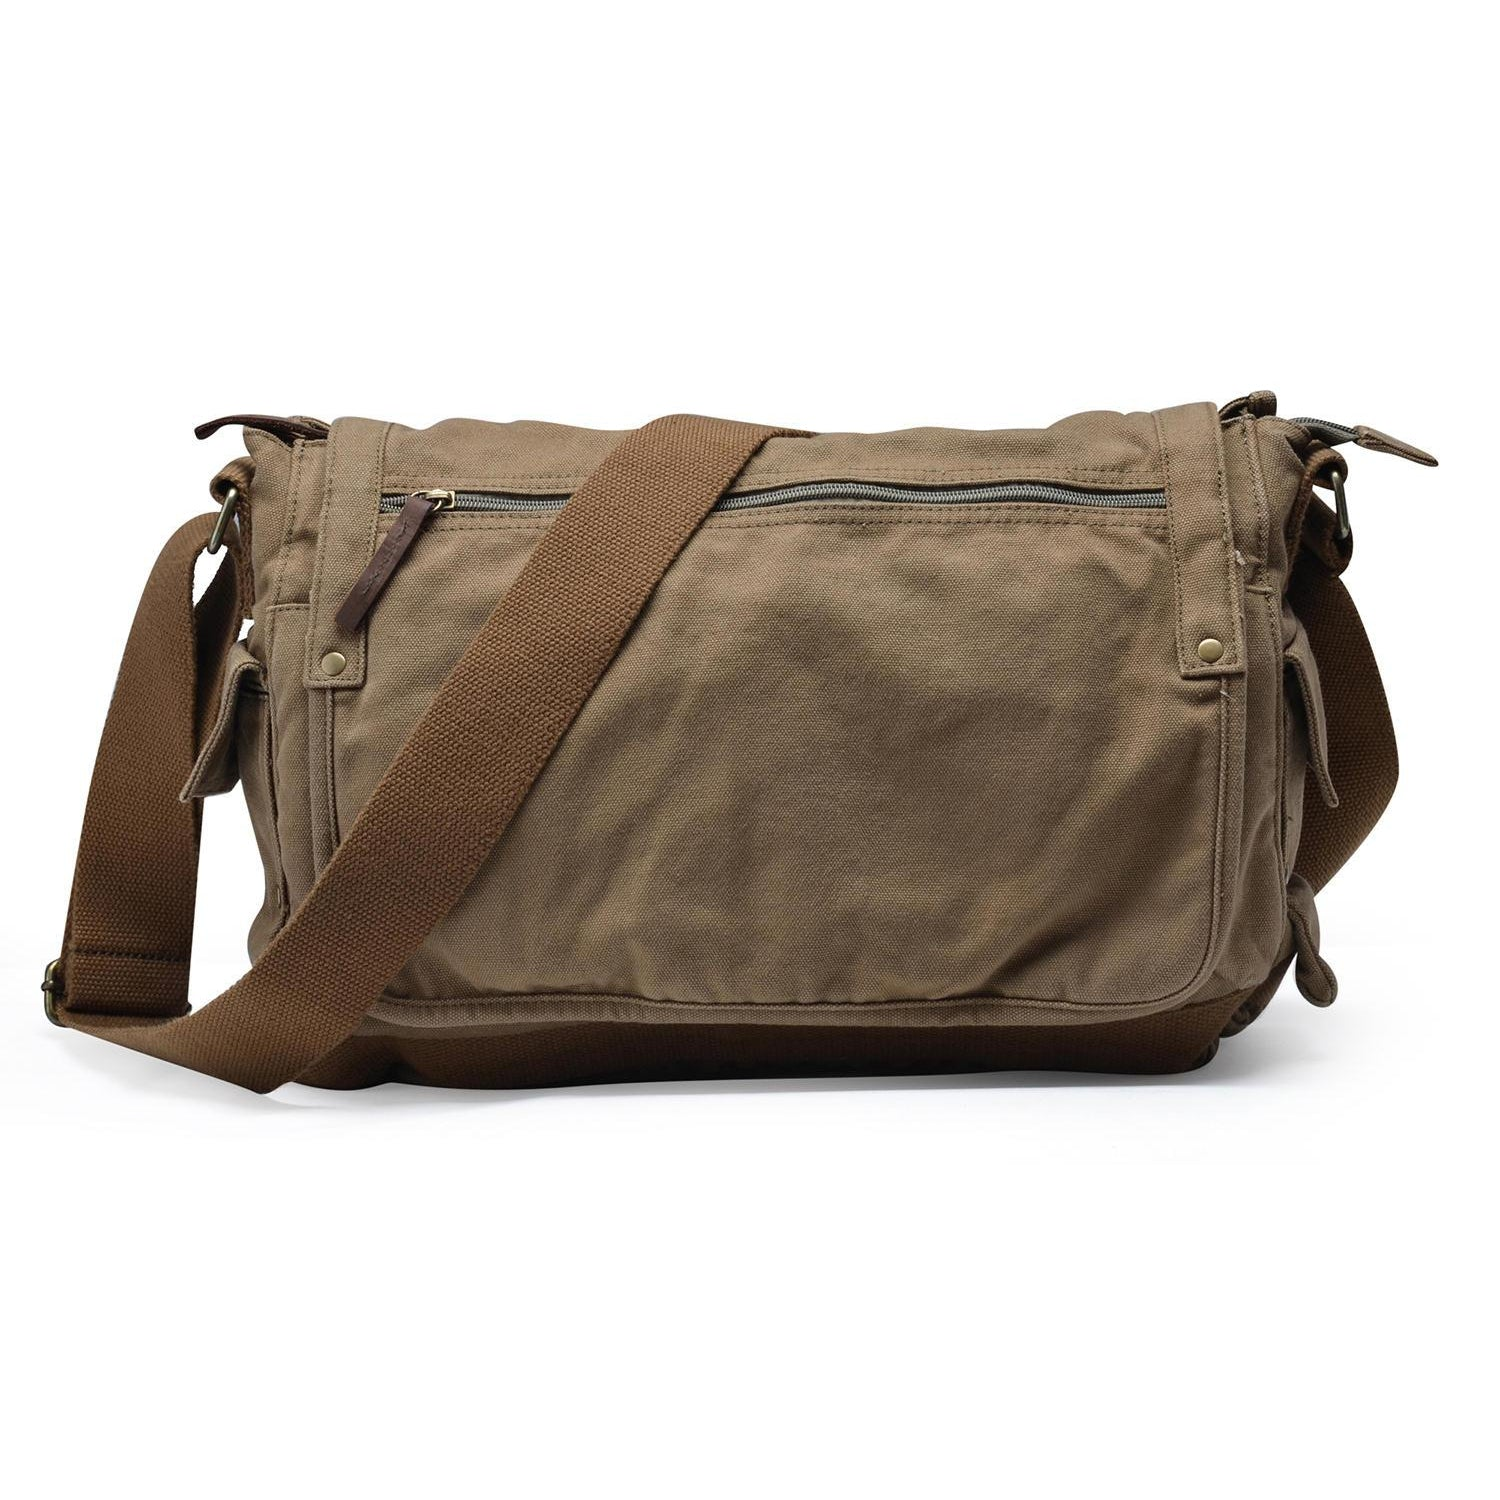 Canvas Messenger Bags  30622 - Gootium 1d378217f